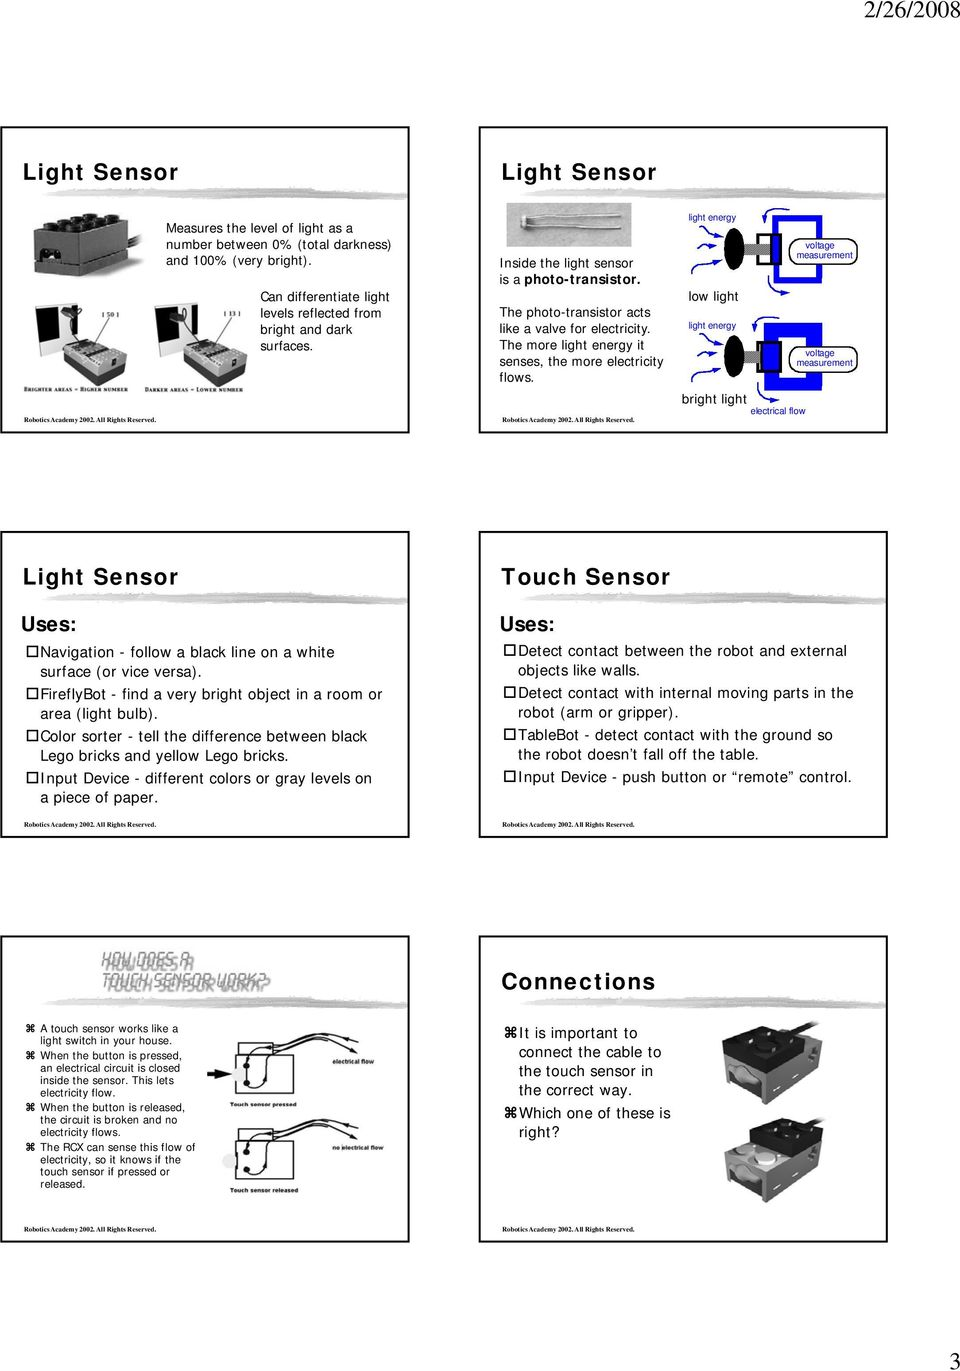 light energy low light light energy bright light electrical flow voltage measurement voltage measurement Light Sensor Touch Sensor Uses: Navigation - follow a black line on a white surface (or vice